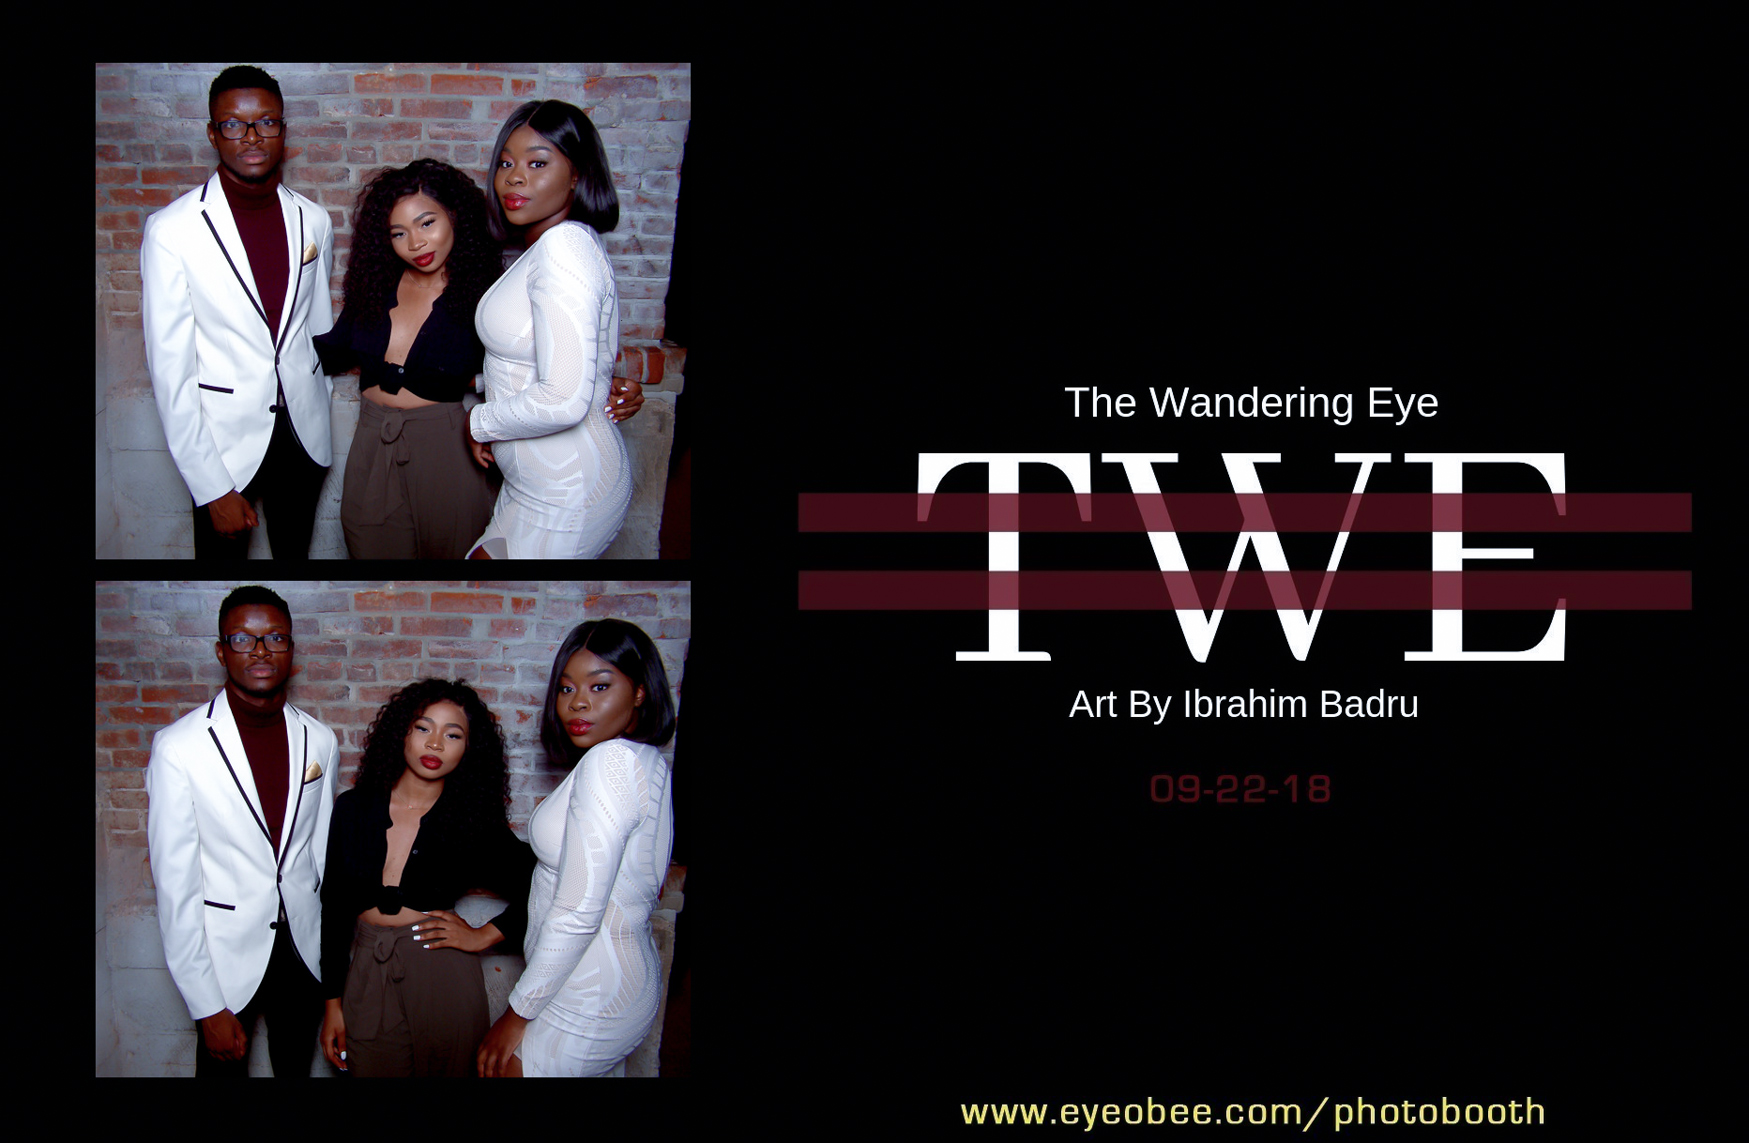 eyeobee PhotoBooth The Wandering eye art by Ibrahim Badru-0-18.jpg